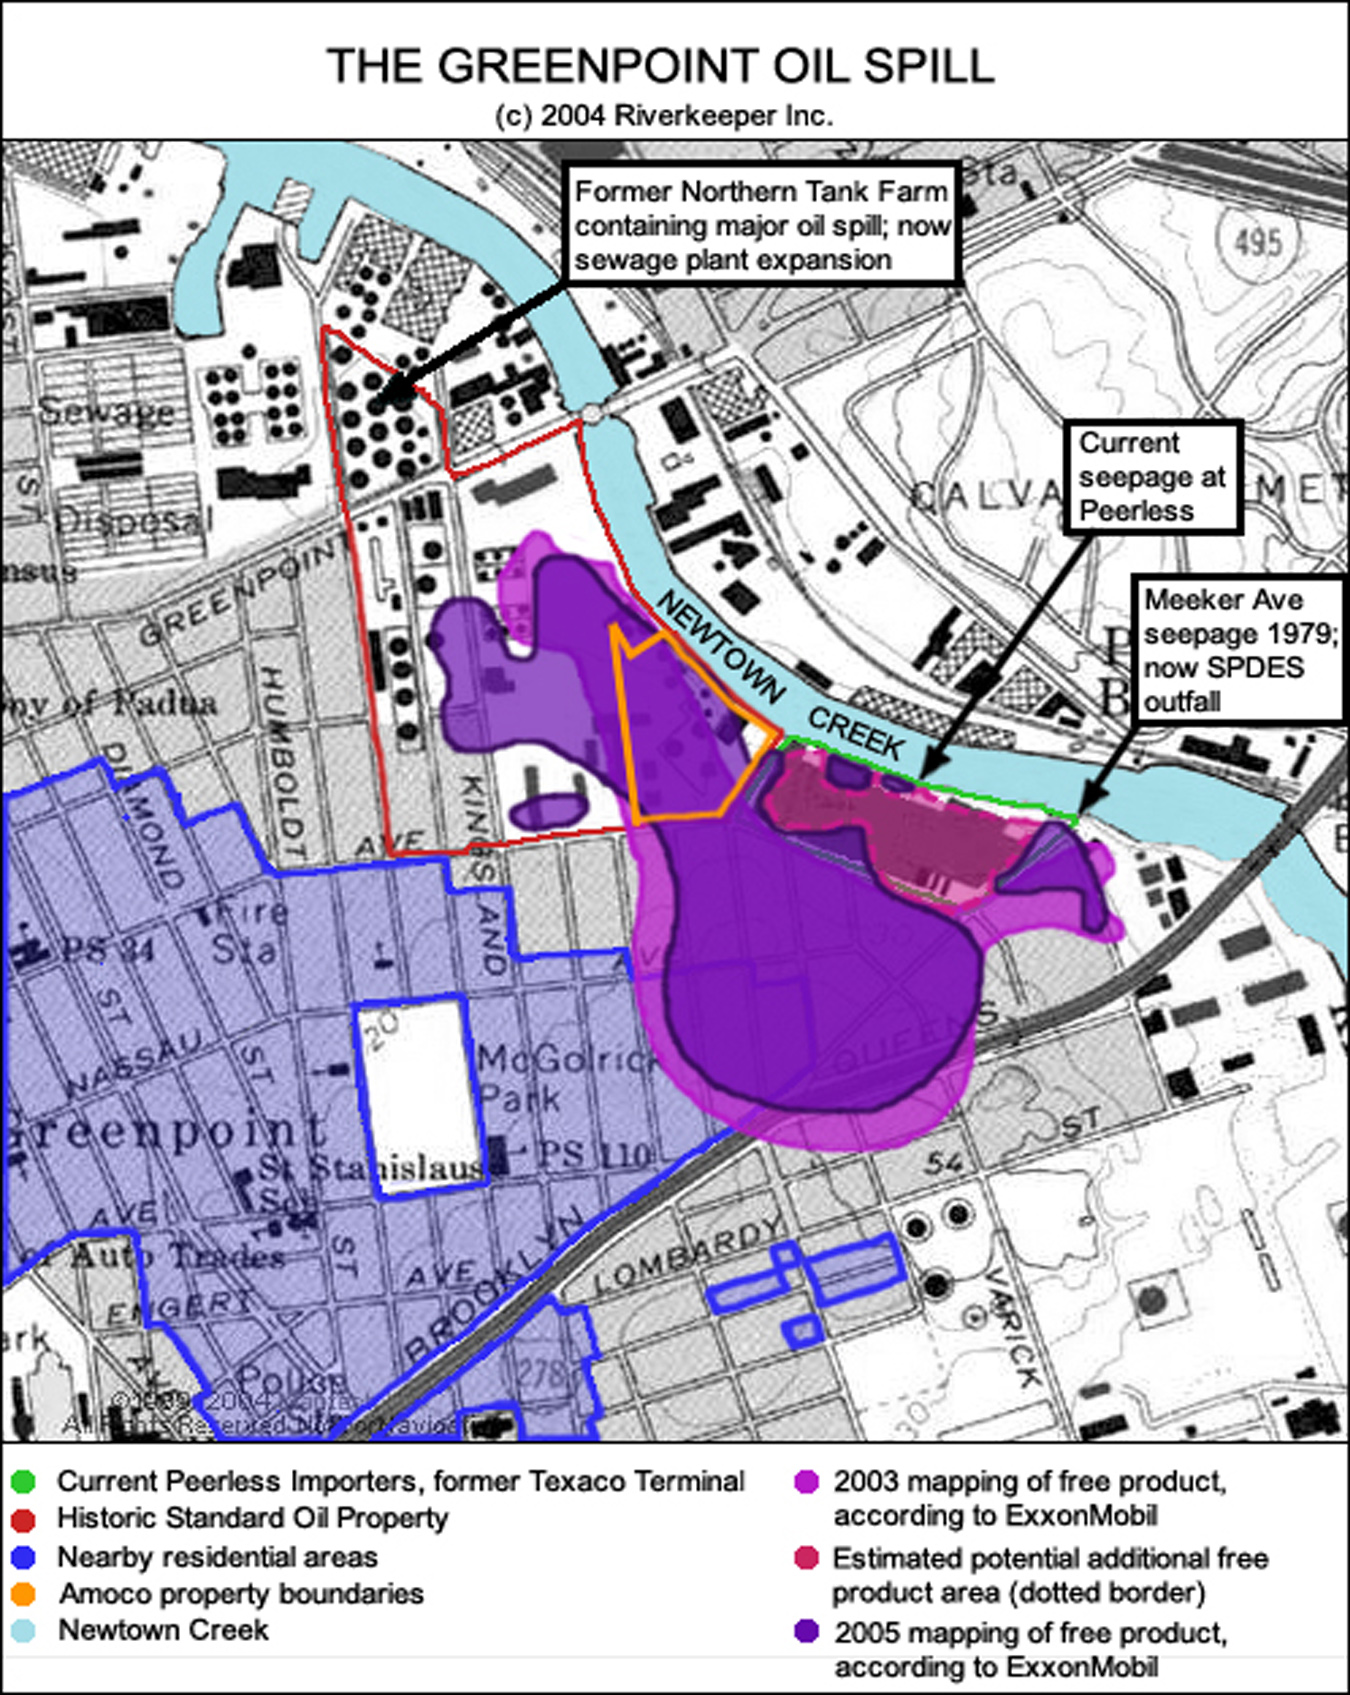 Affected area from the Greenpoint Oil Spill